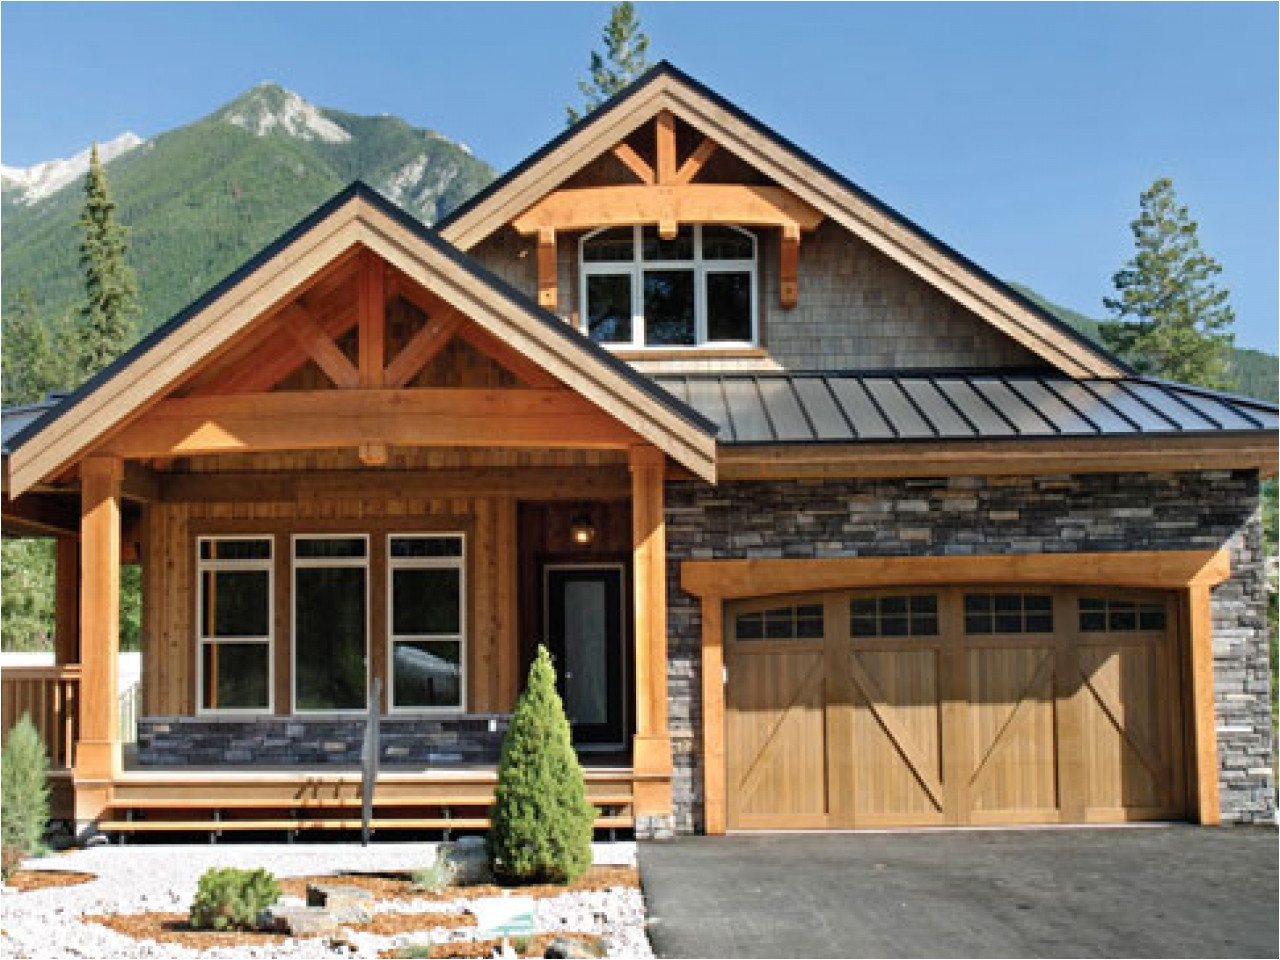 Post and Beam Homes Plans Post and Beam Houses Post and Beam Home Designs Post and